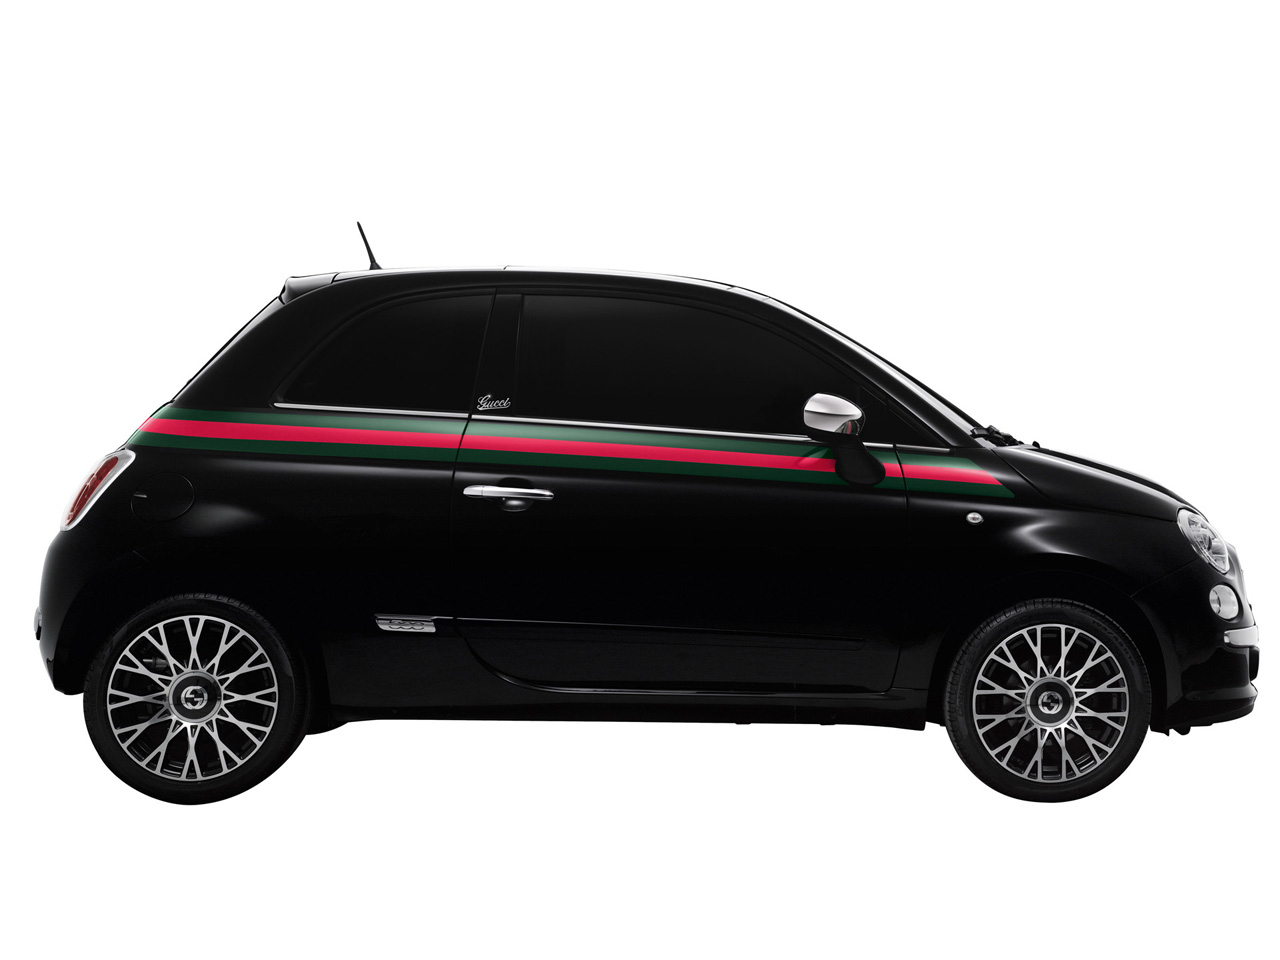 Fiat 500 By Gucci The Car Club